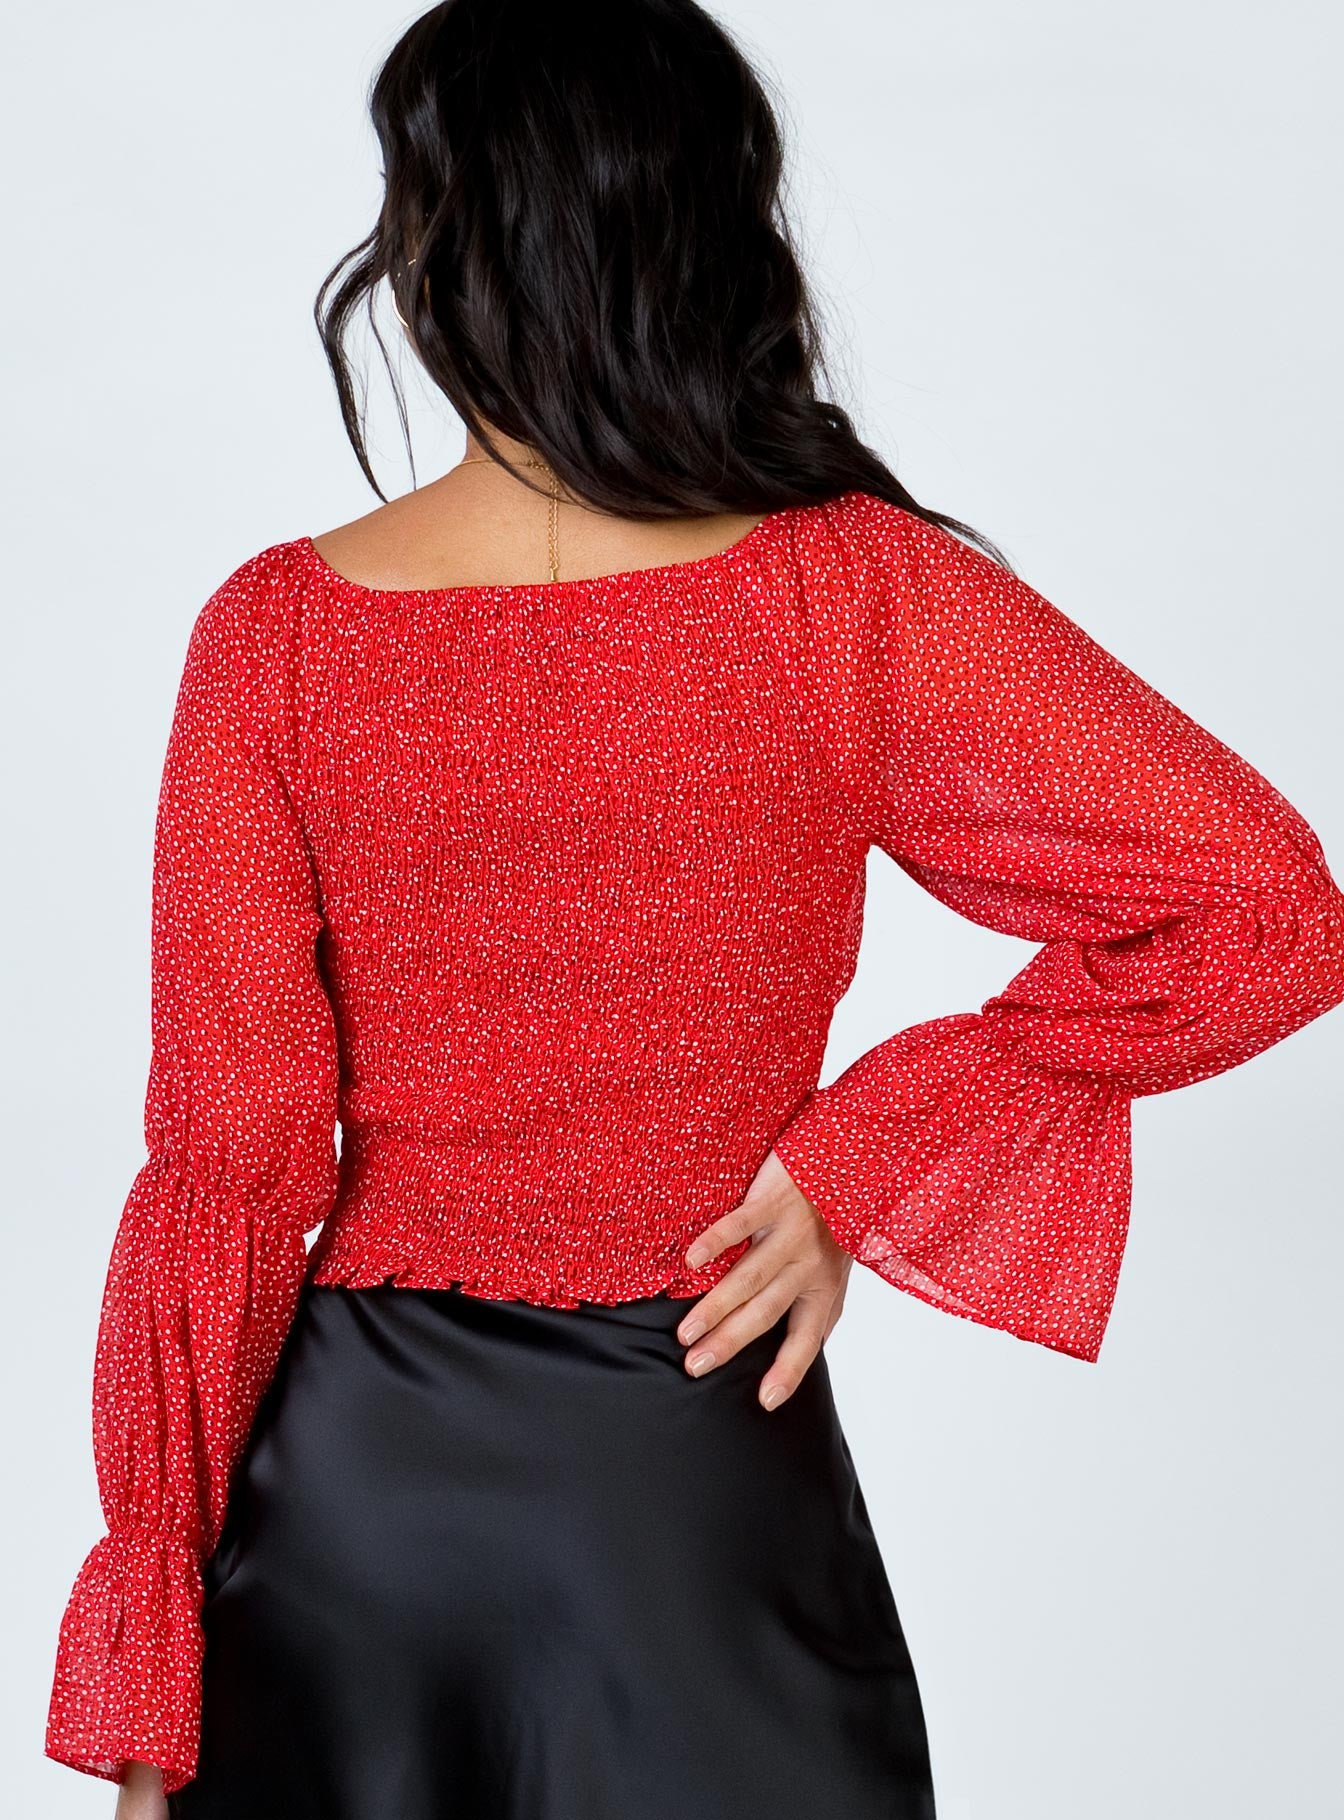 Briana Baby Top Red Print